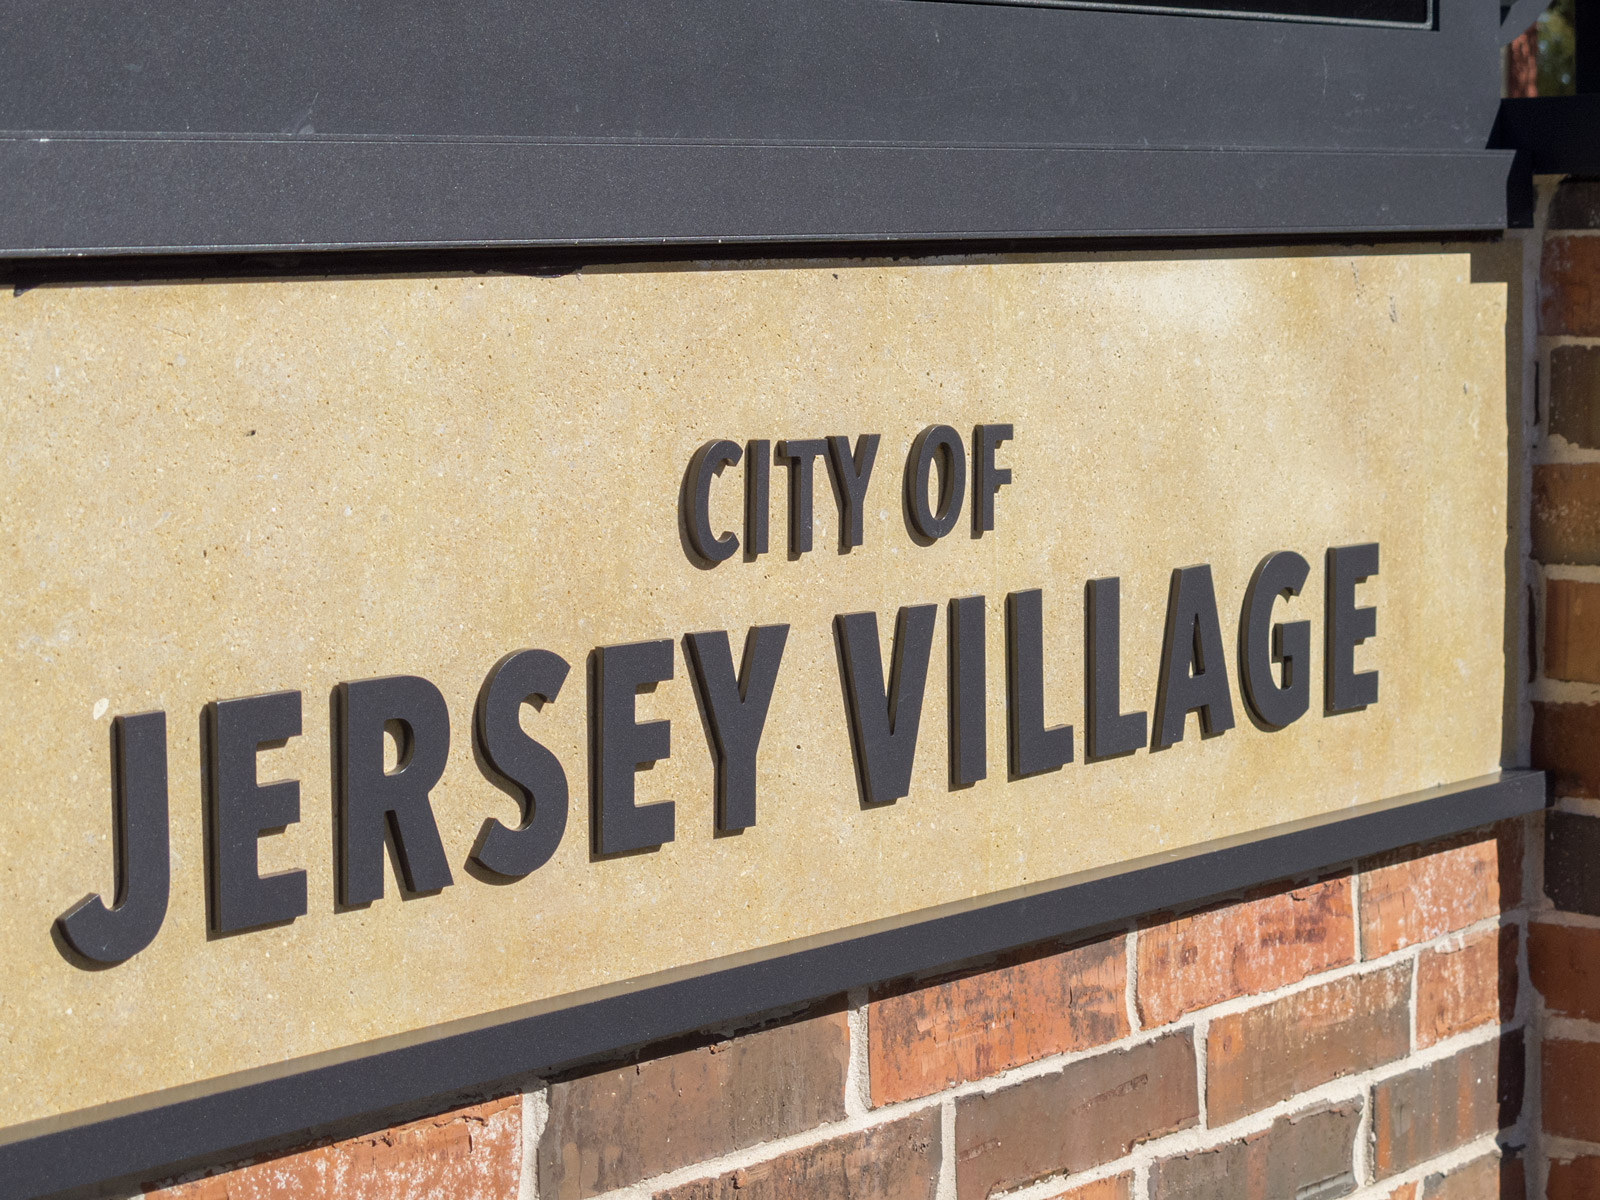 Custom dimensional aluminum letters on entry monument at City of Jersey Village